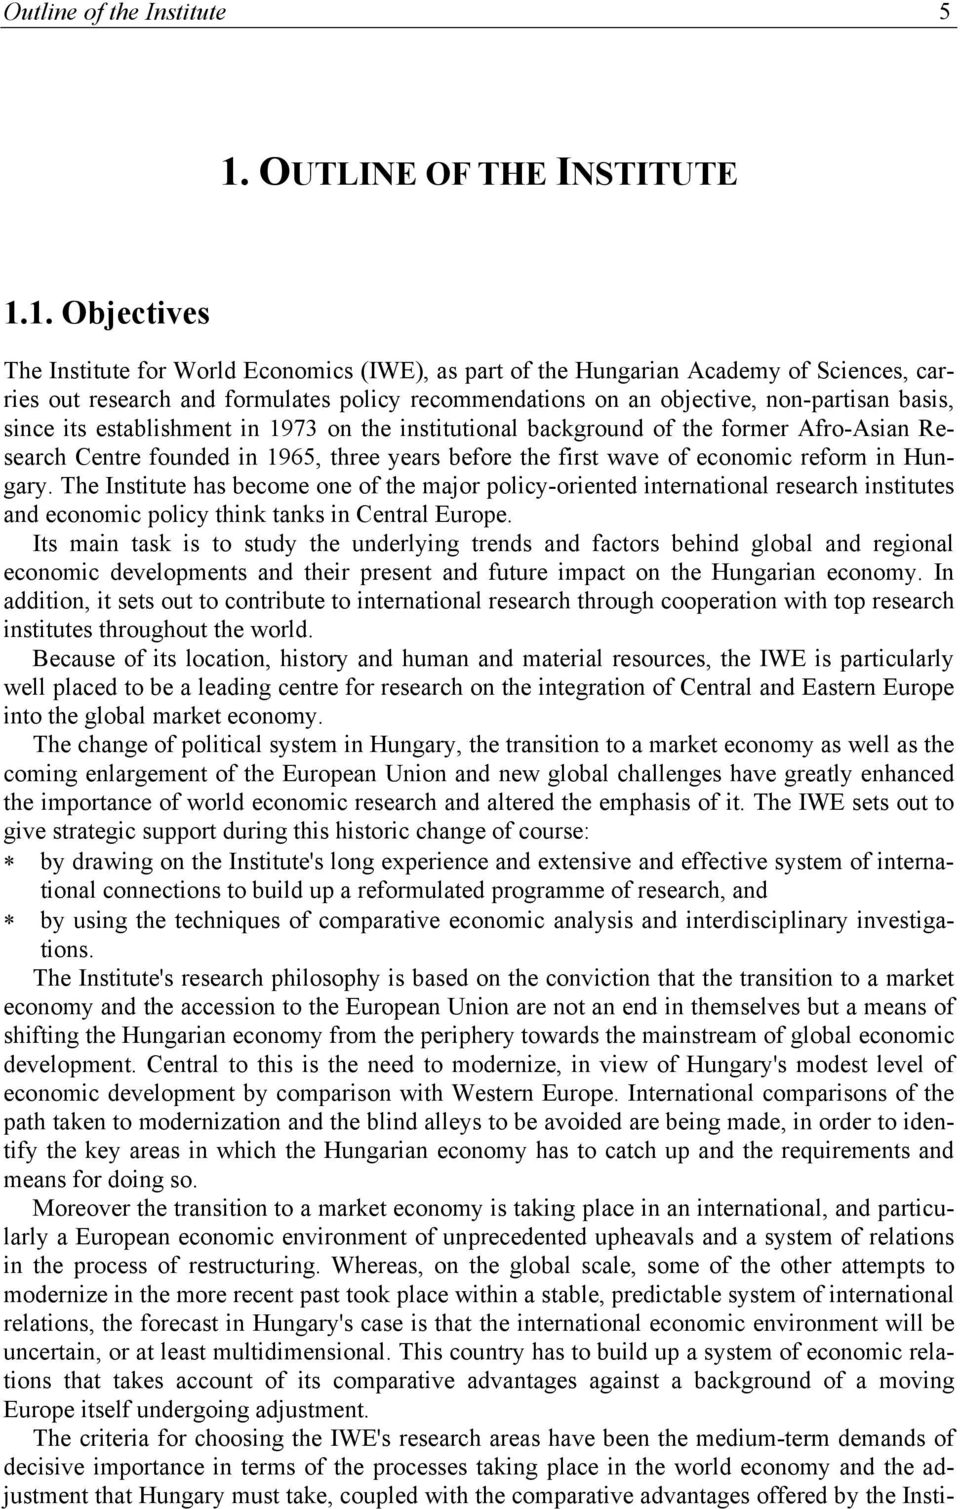 1. Objectives The Institute for World Economics (IWE), as part of the Hungarian Academy of Sciences, carries out research and formulates policy recommendations on an objective, non-partisan basis,